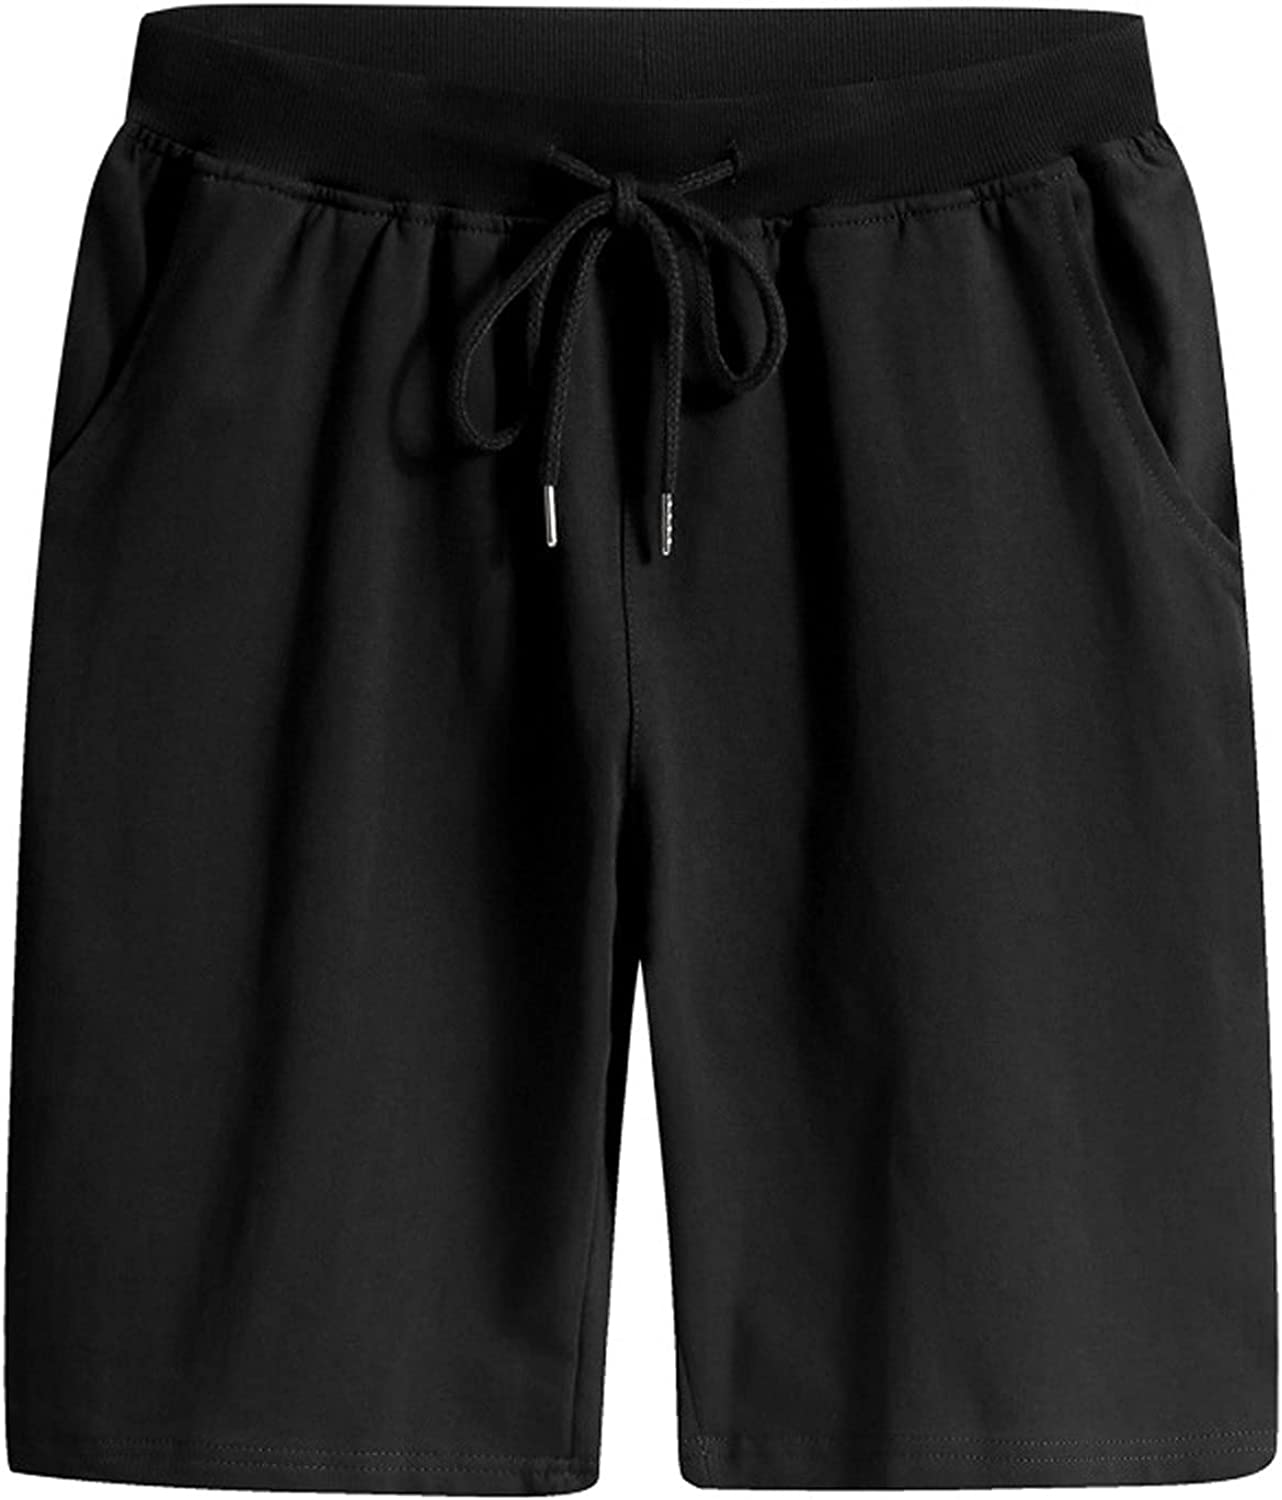 ZCAITIANYA Men's Shorts Cotton Casual Slim Fit Sport Jogging Fitness Drawstring Summer Beach Solid Elastic Waist with Pockets